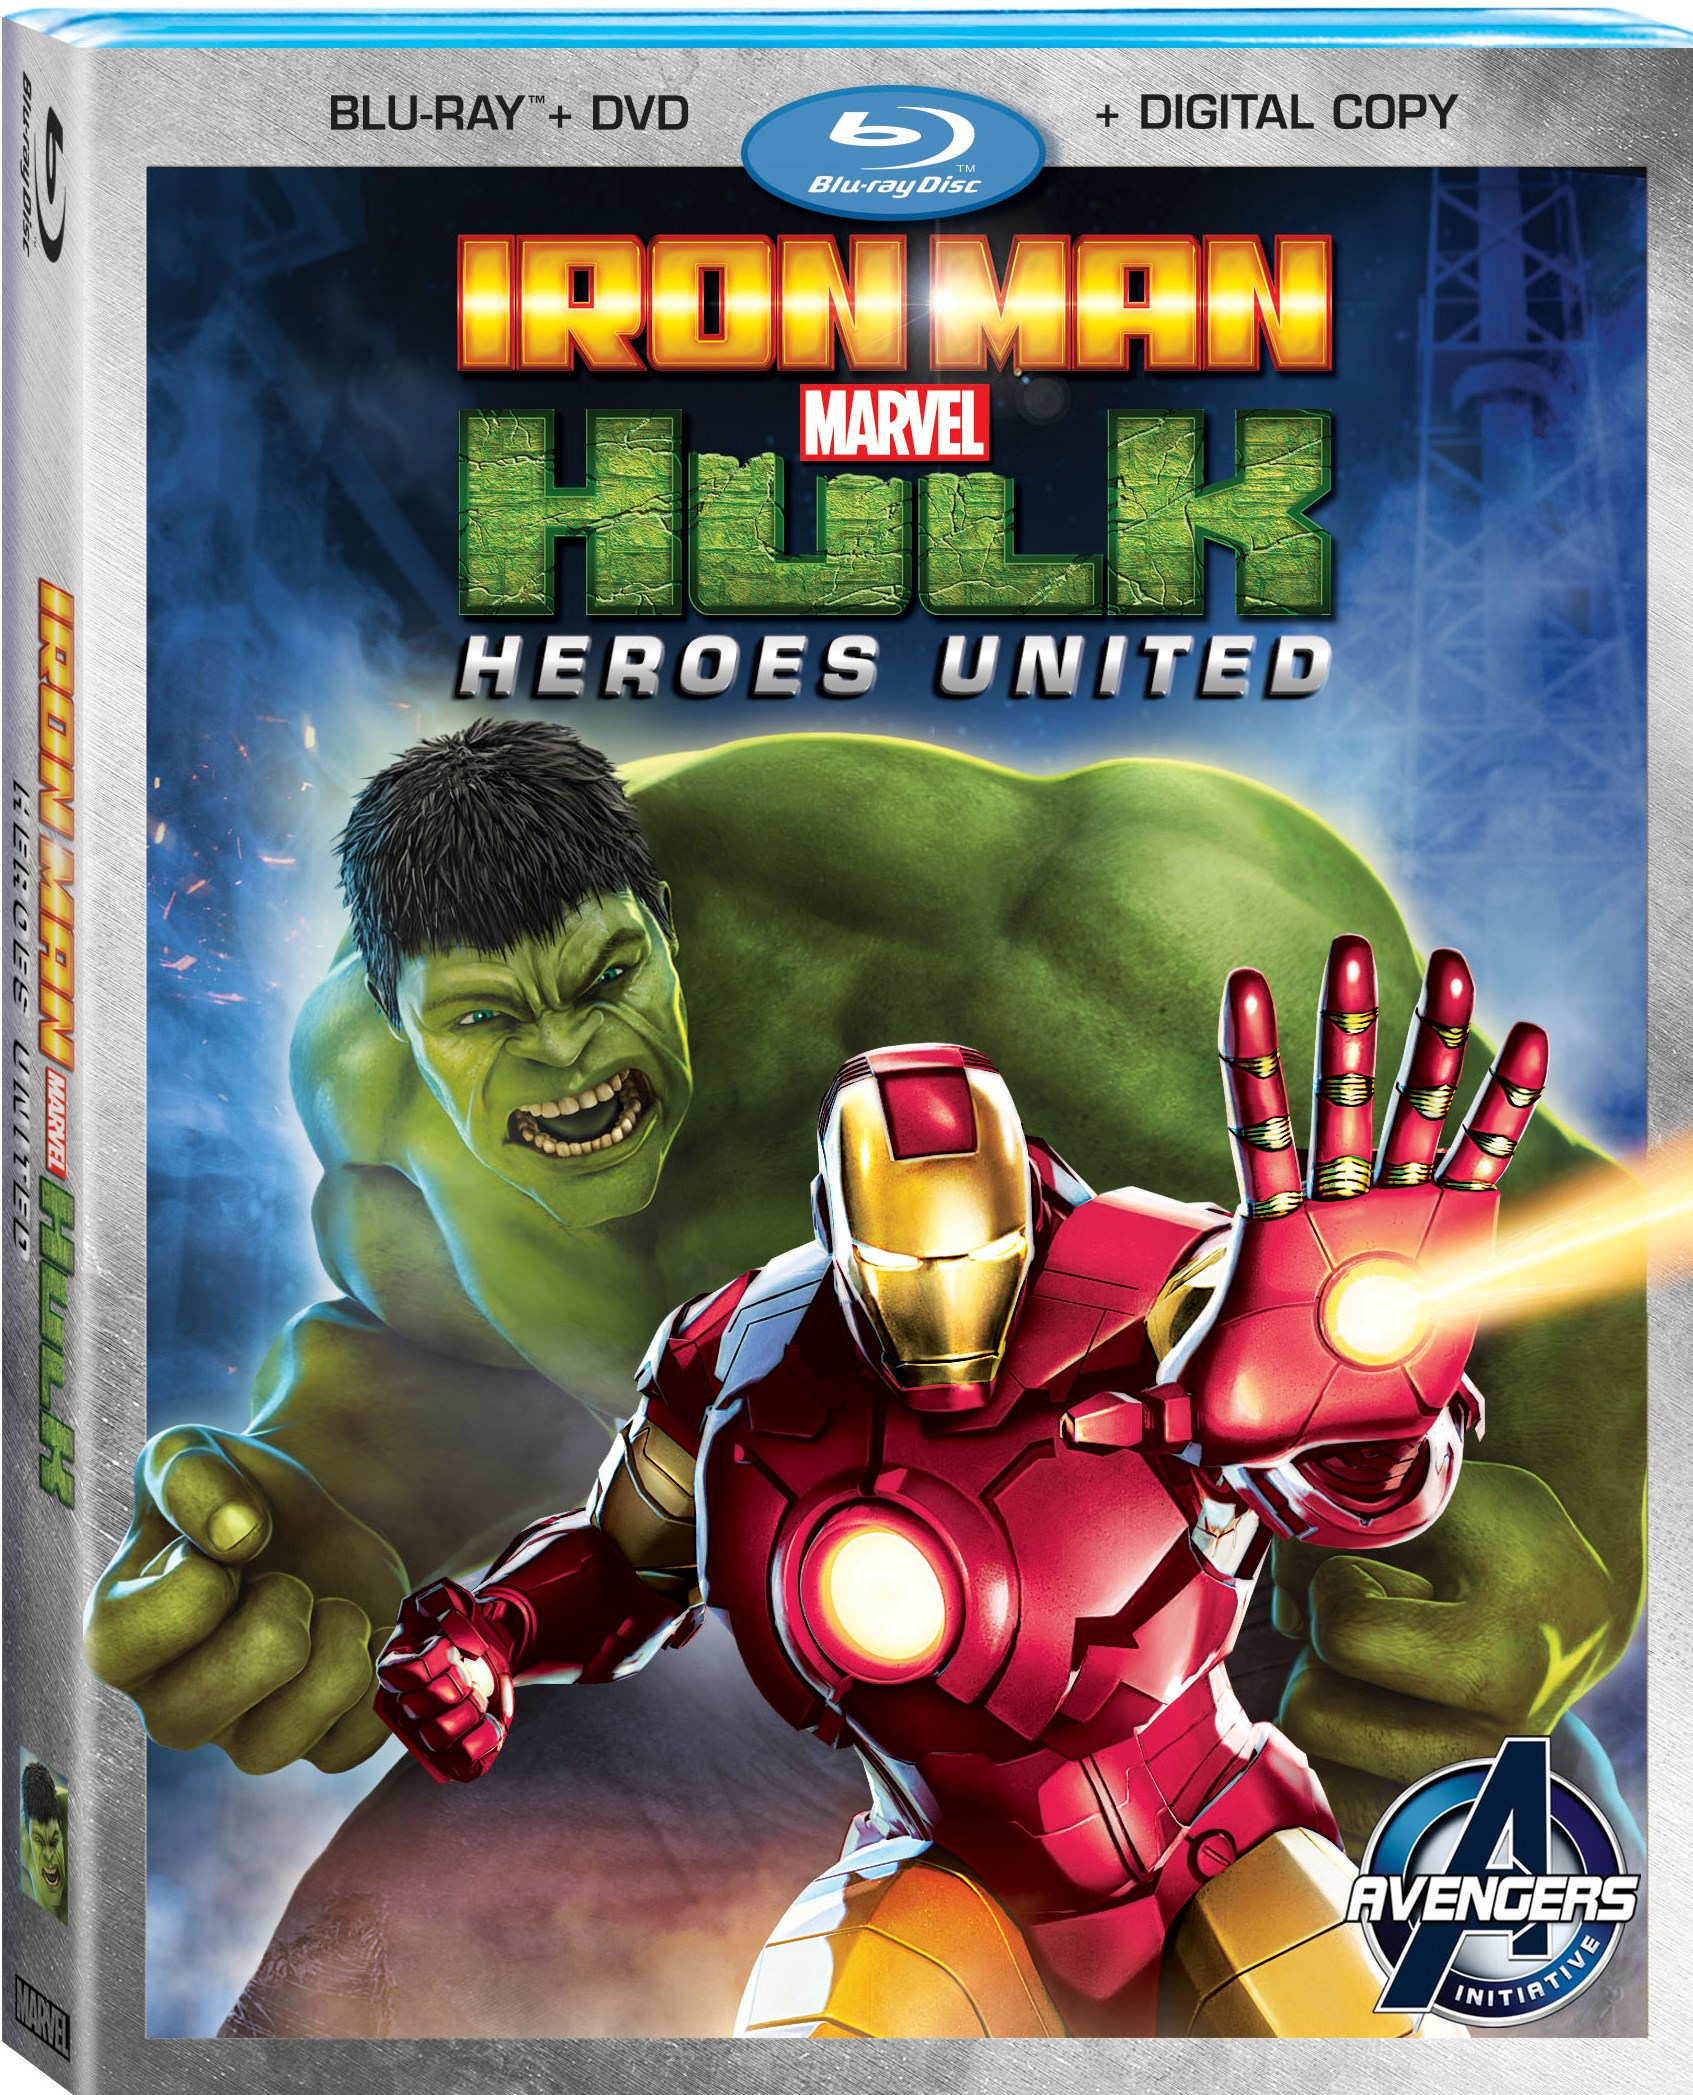 Marvels Iron Man & Hulk: Heroes United Coming To Blu-ray